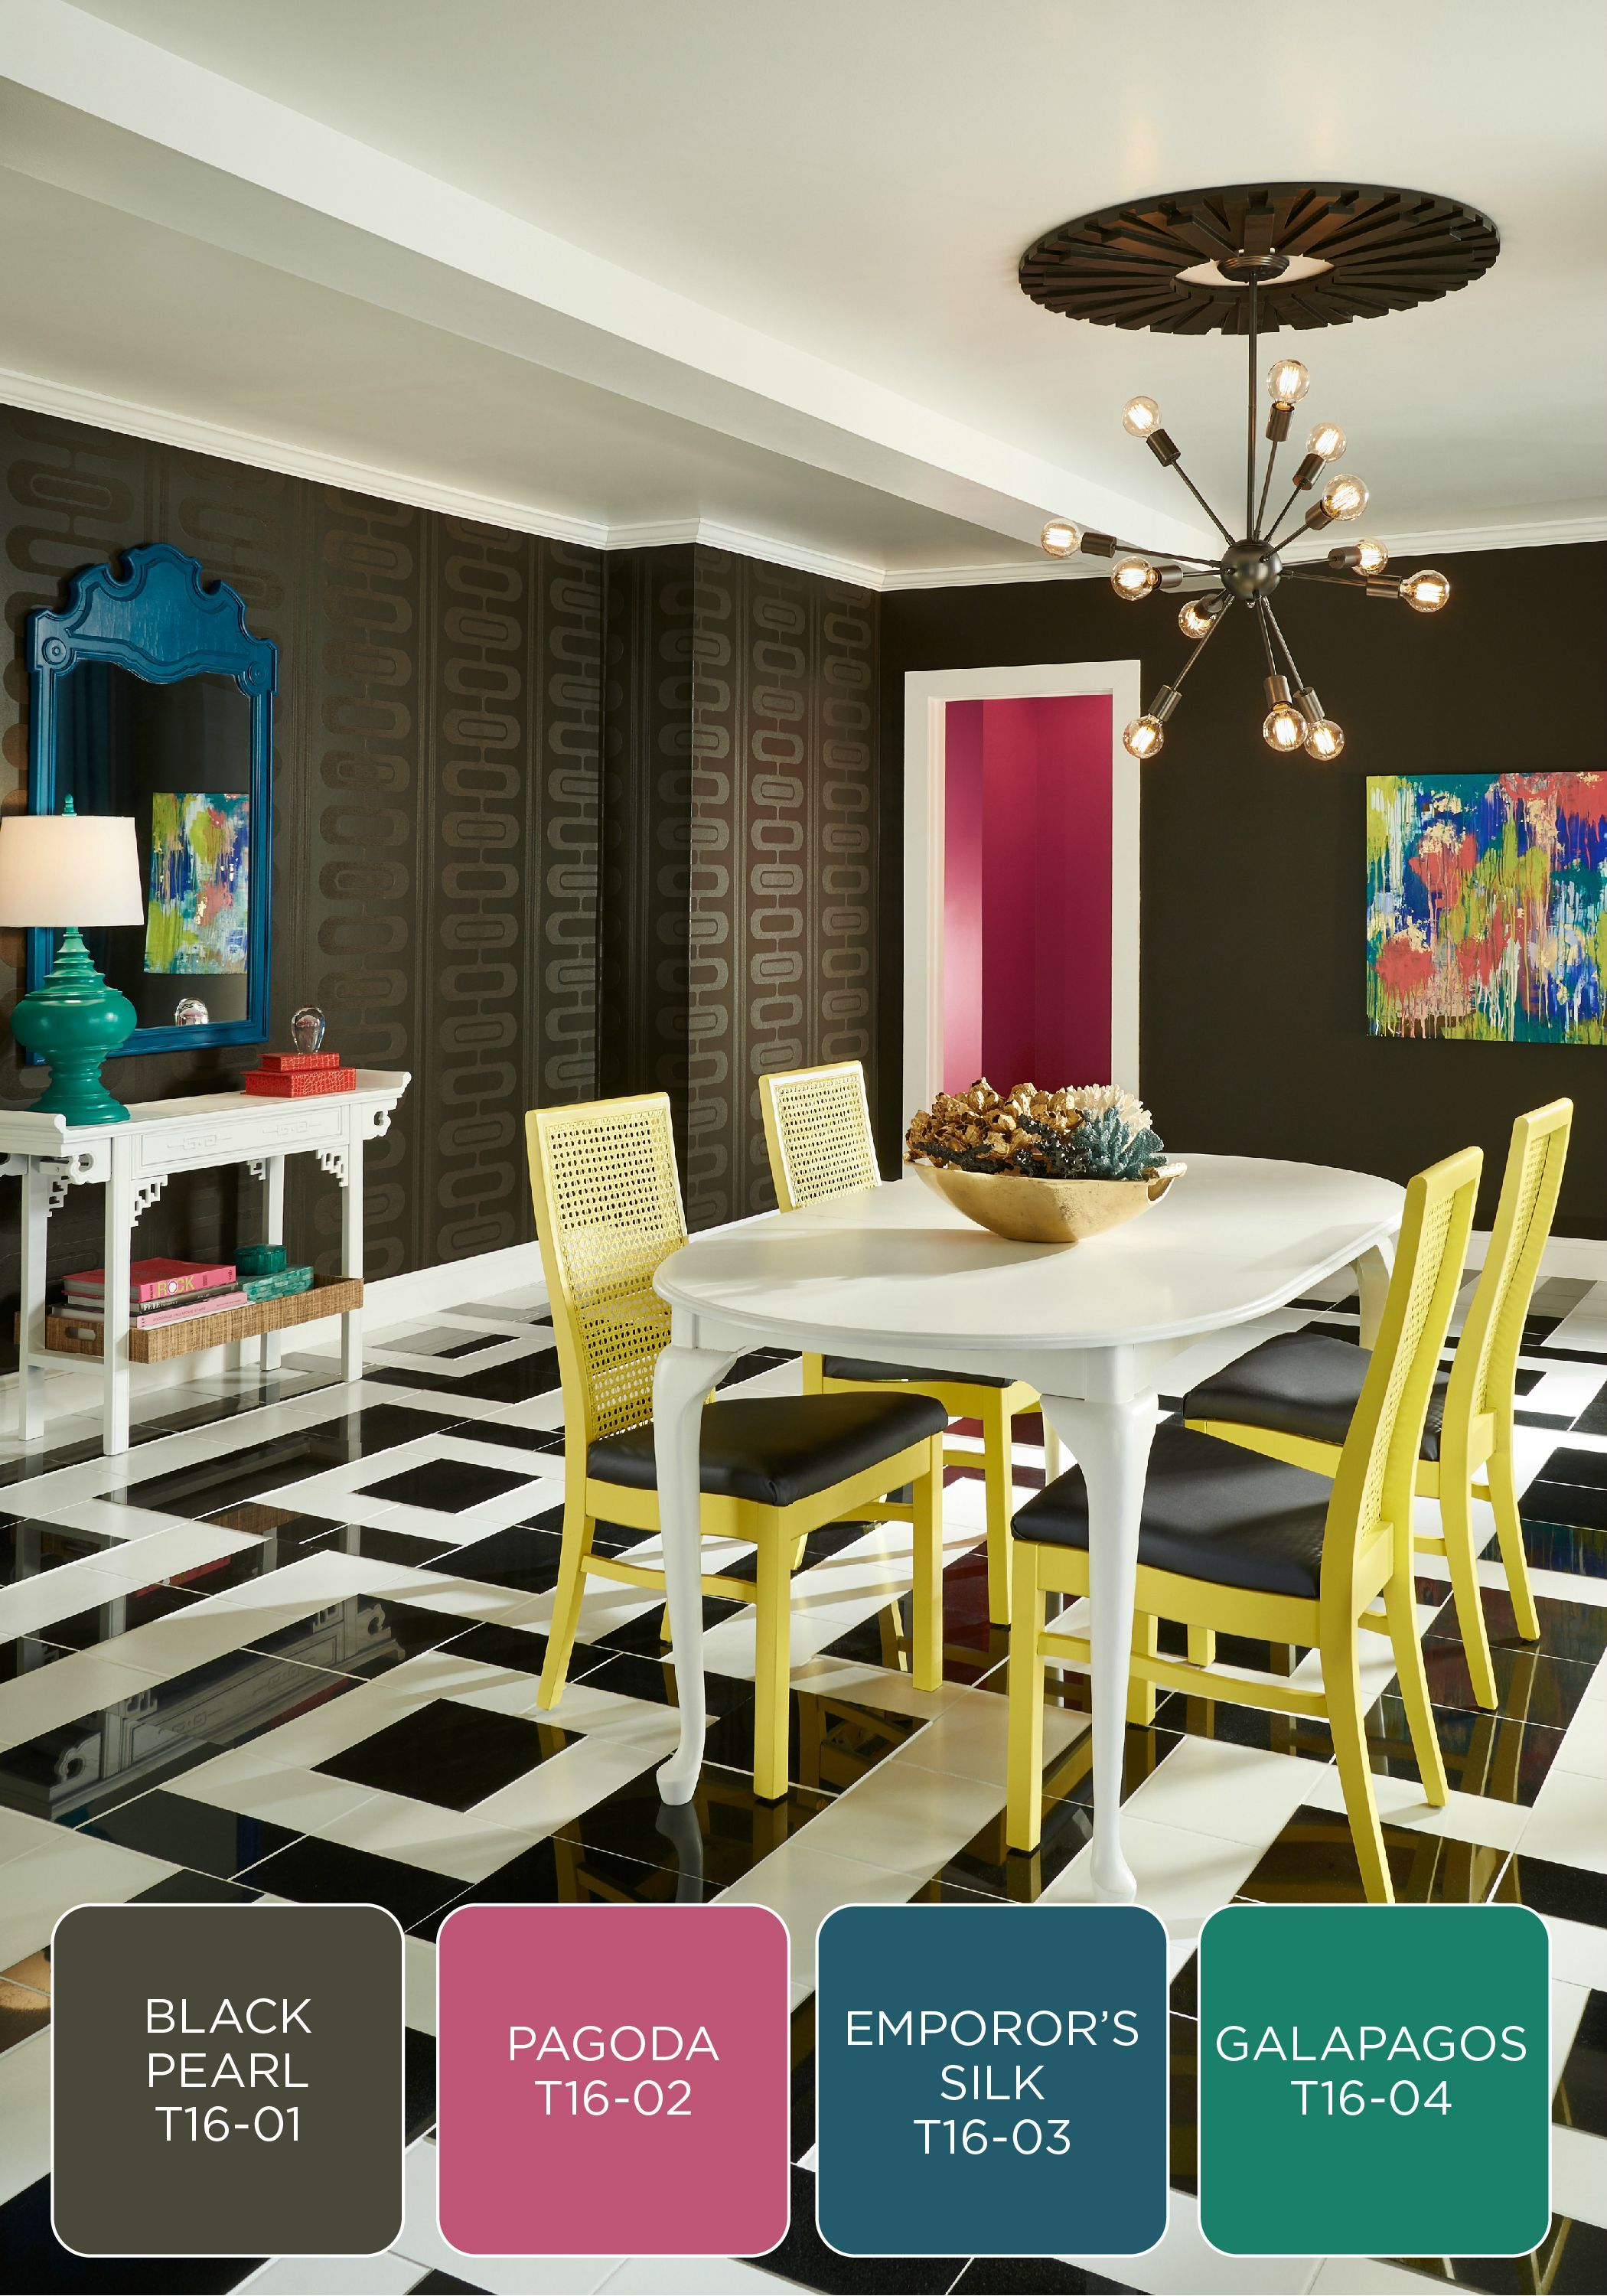 The 2016 Behr Color Trends May Help To Inspire A New Color Palette Or Interior Design Style In